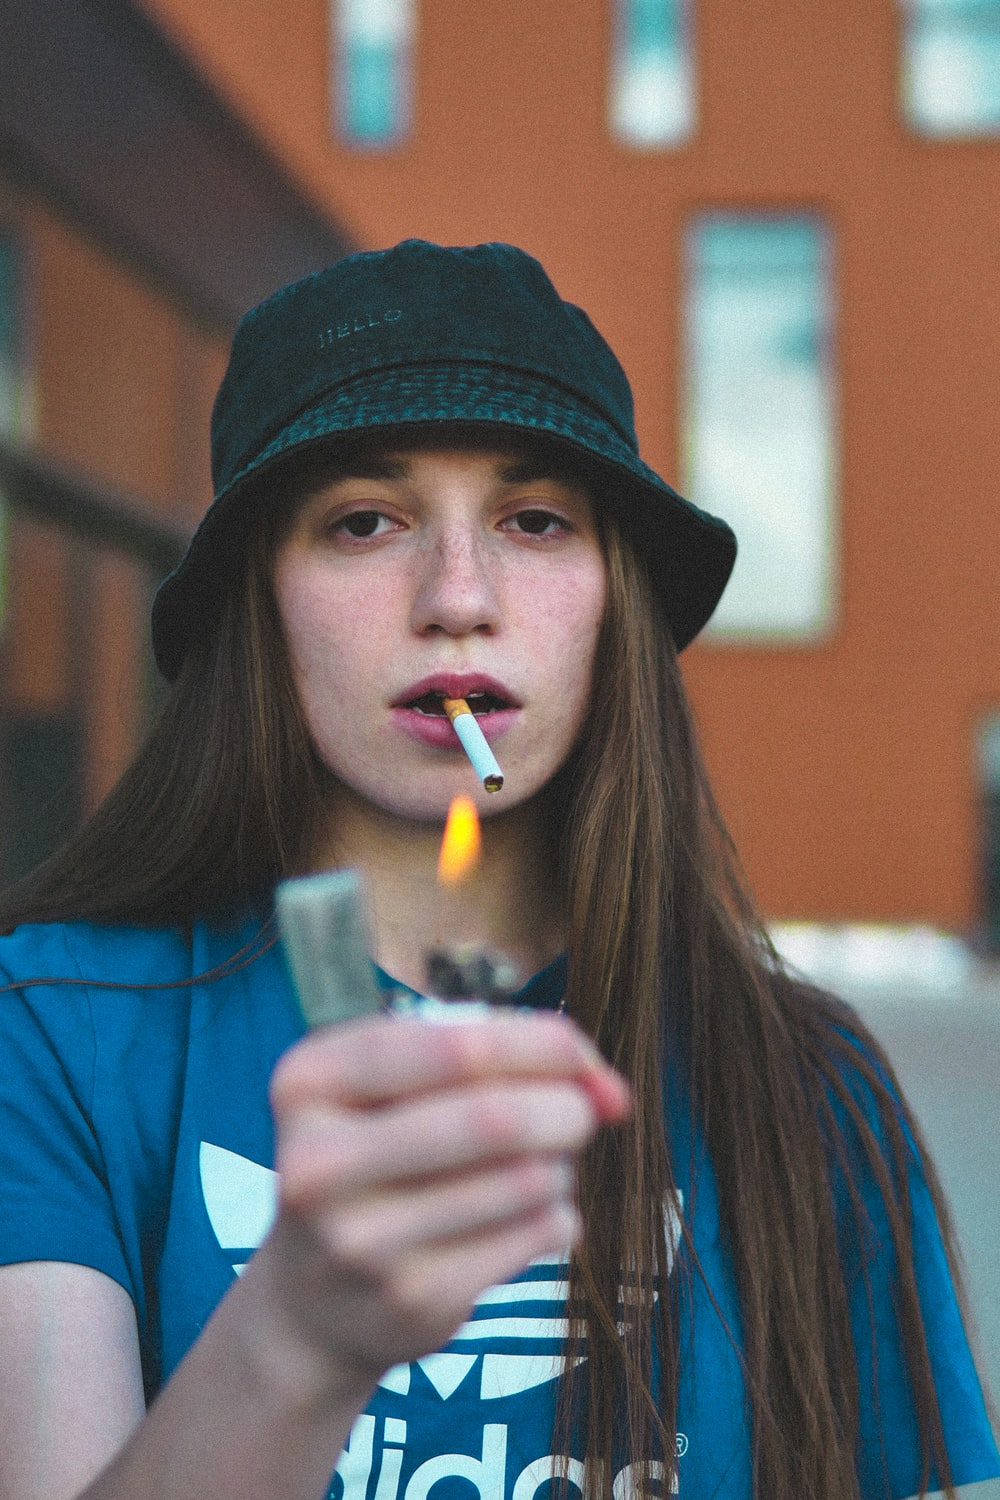 woman in blue shirt holding white disposable cup with lighted cigarette stick